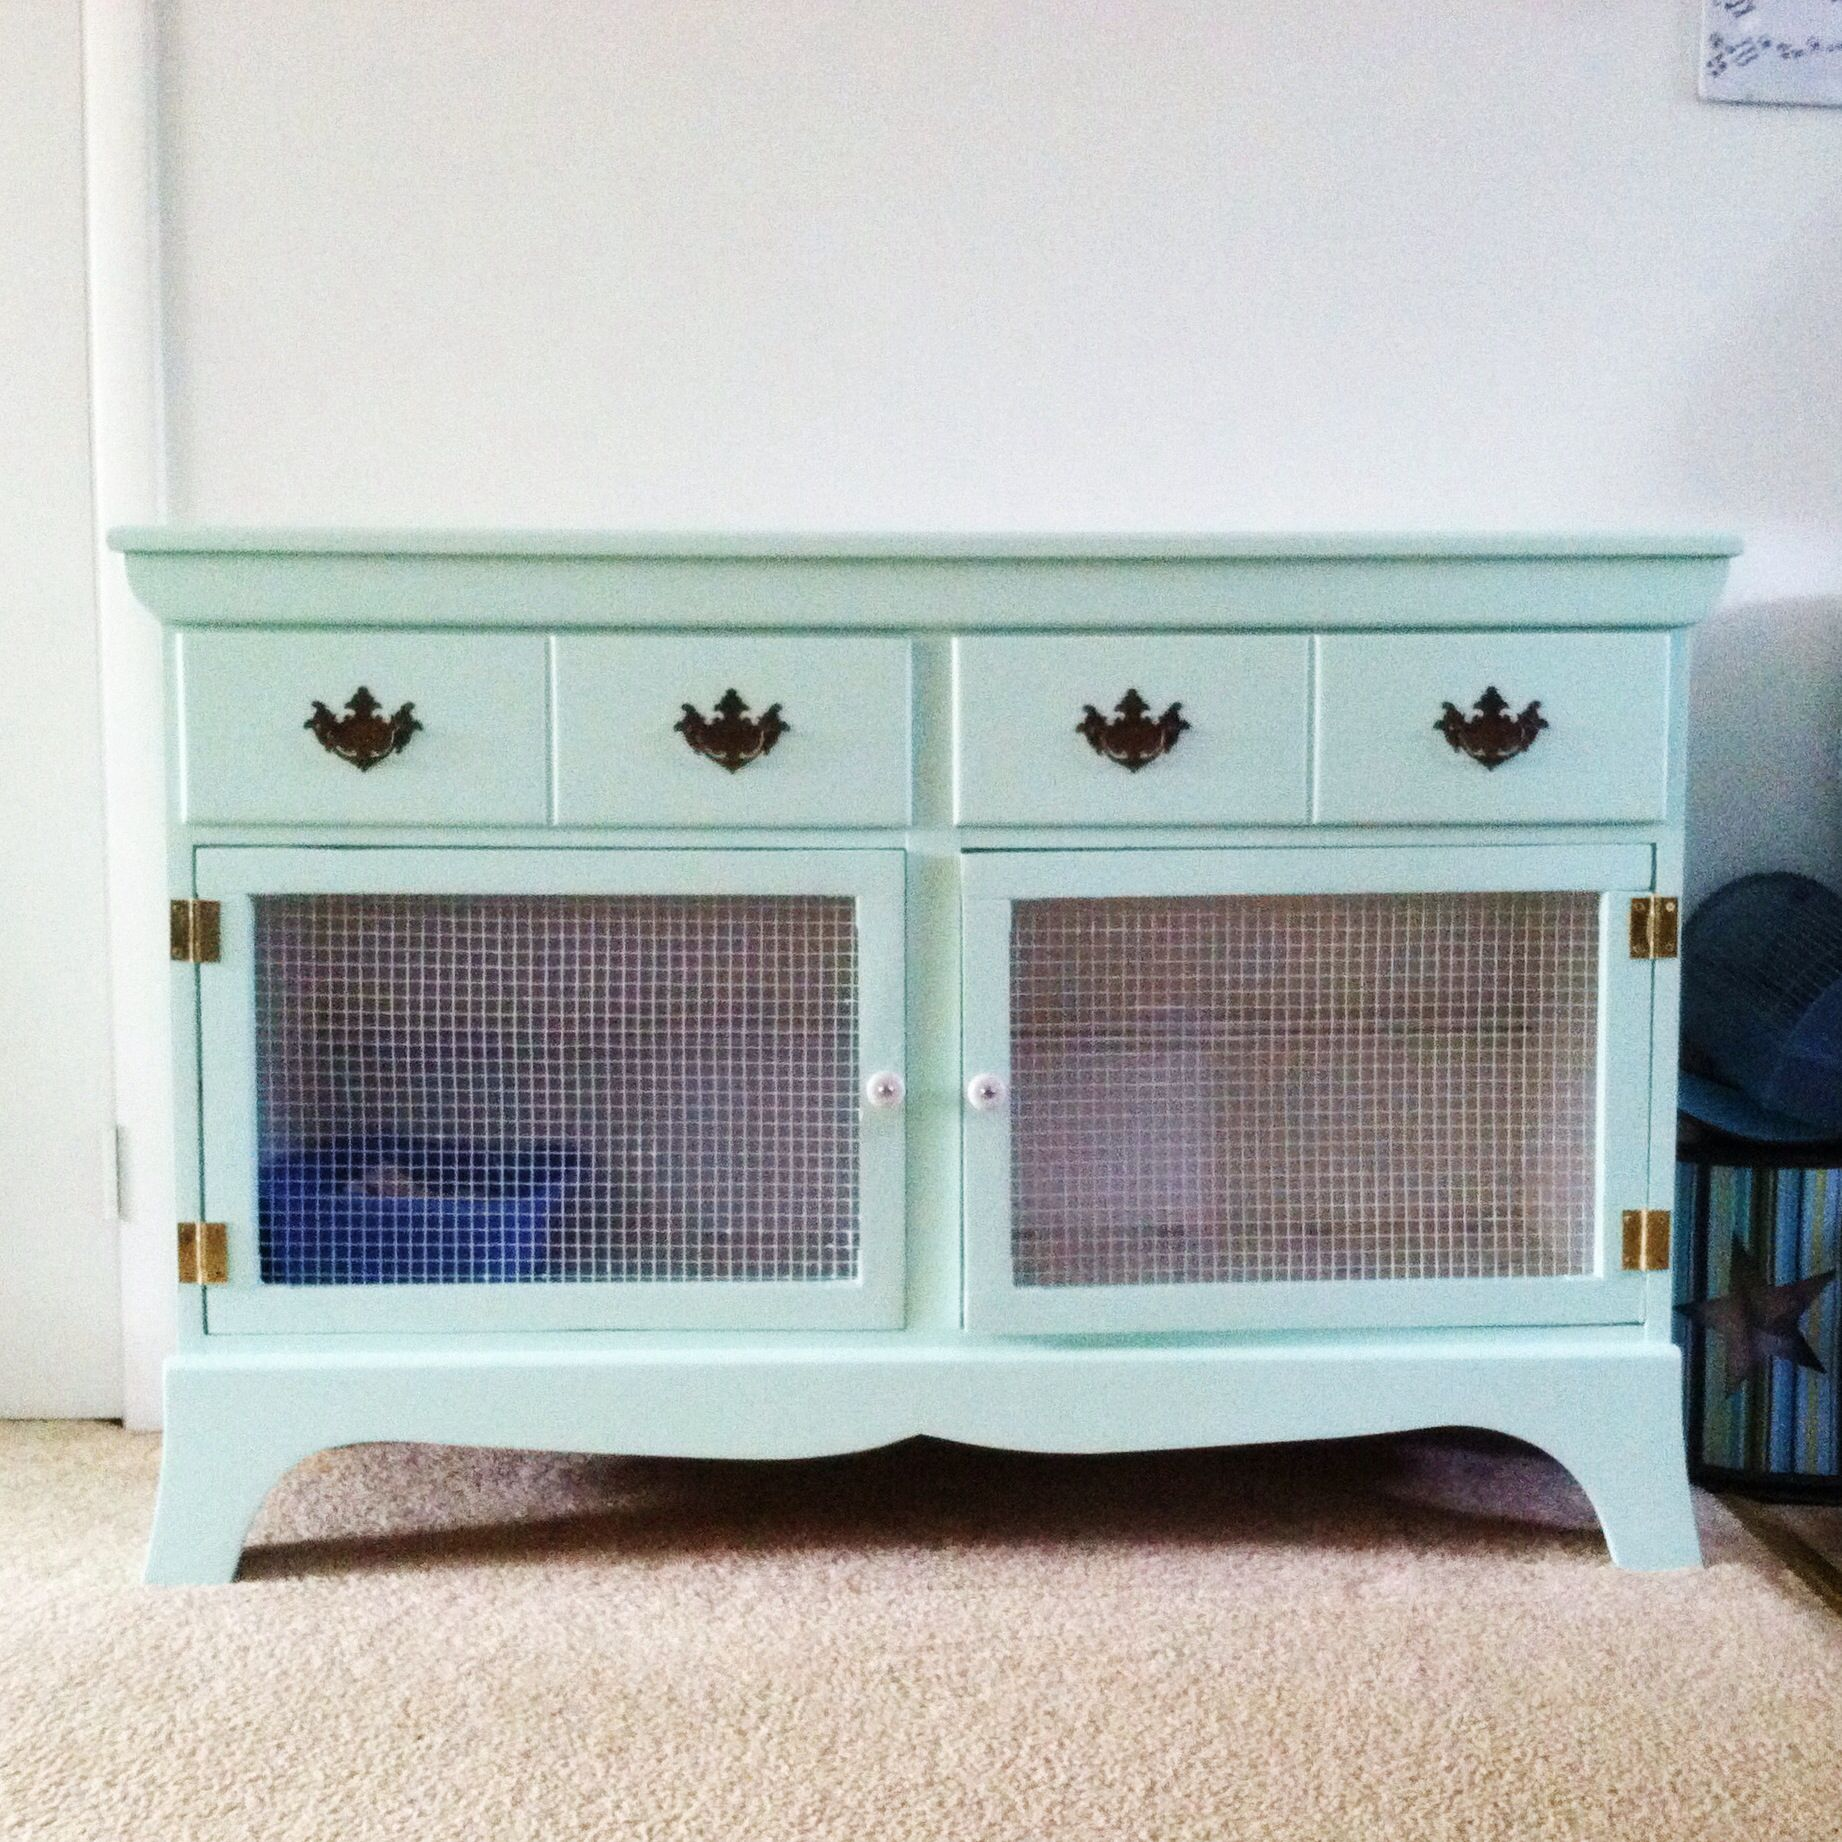 Diy Cage For Rabbit Diy Rabbit Hutch Repurposed From A Dresser Bunny